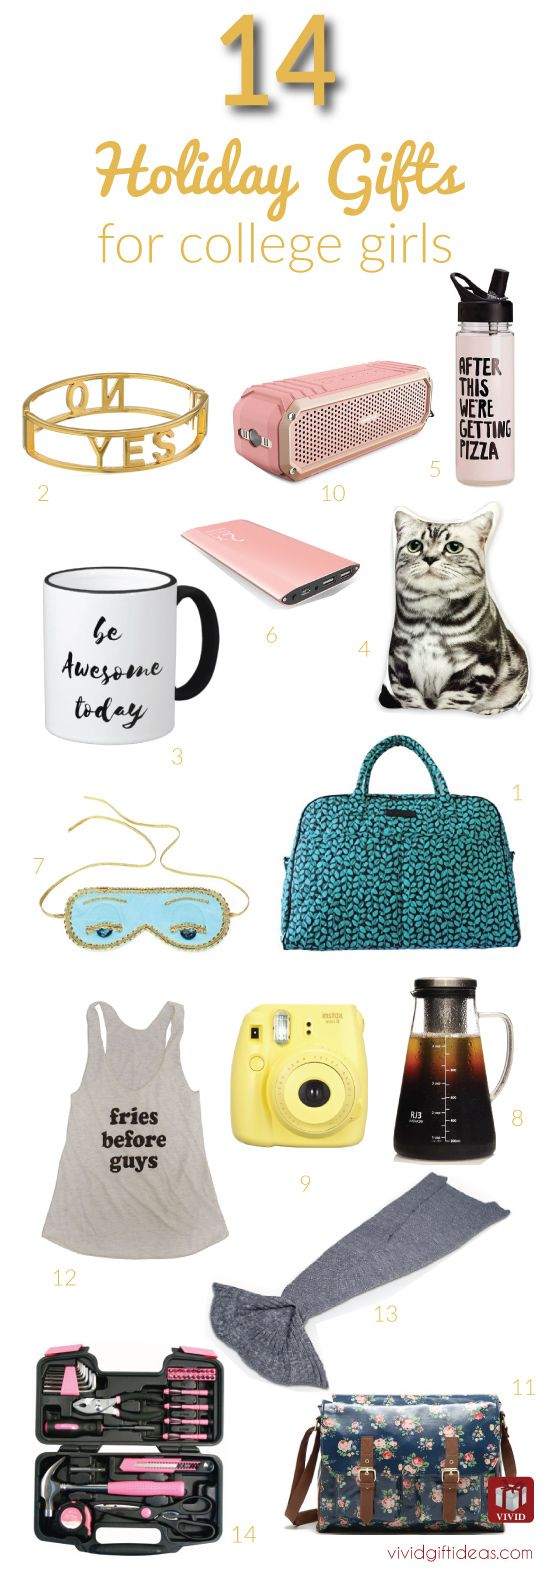 Holiday gift ideas for college student. 14 great Christmas gifts for college girls.